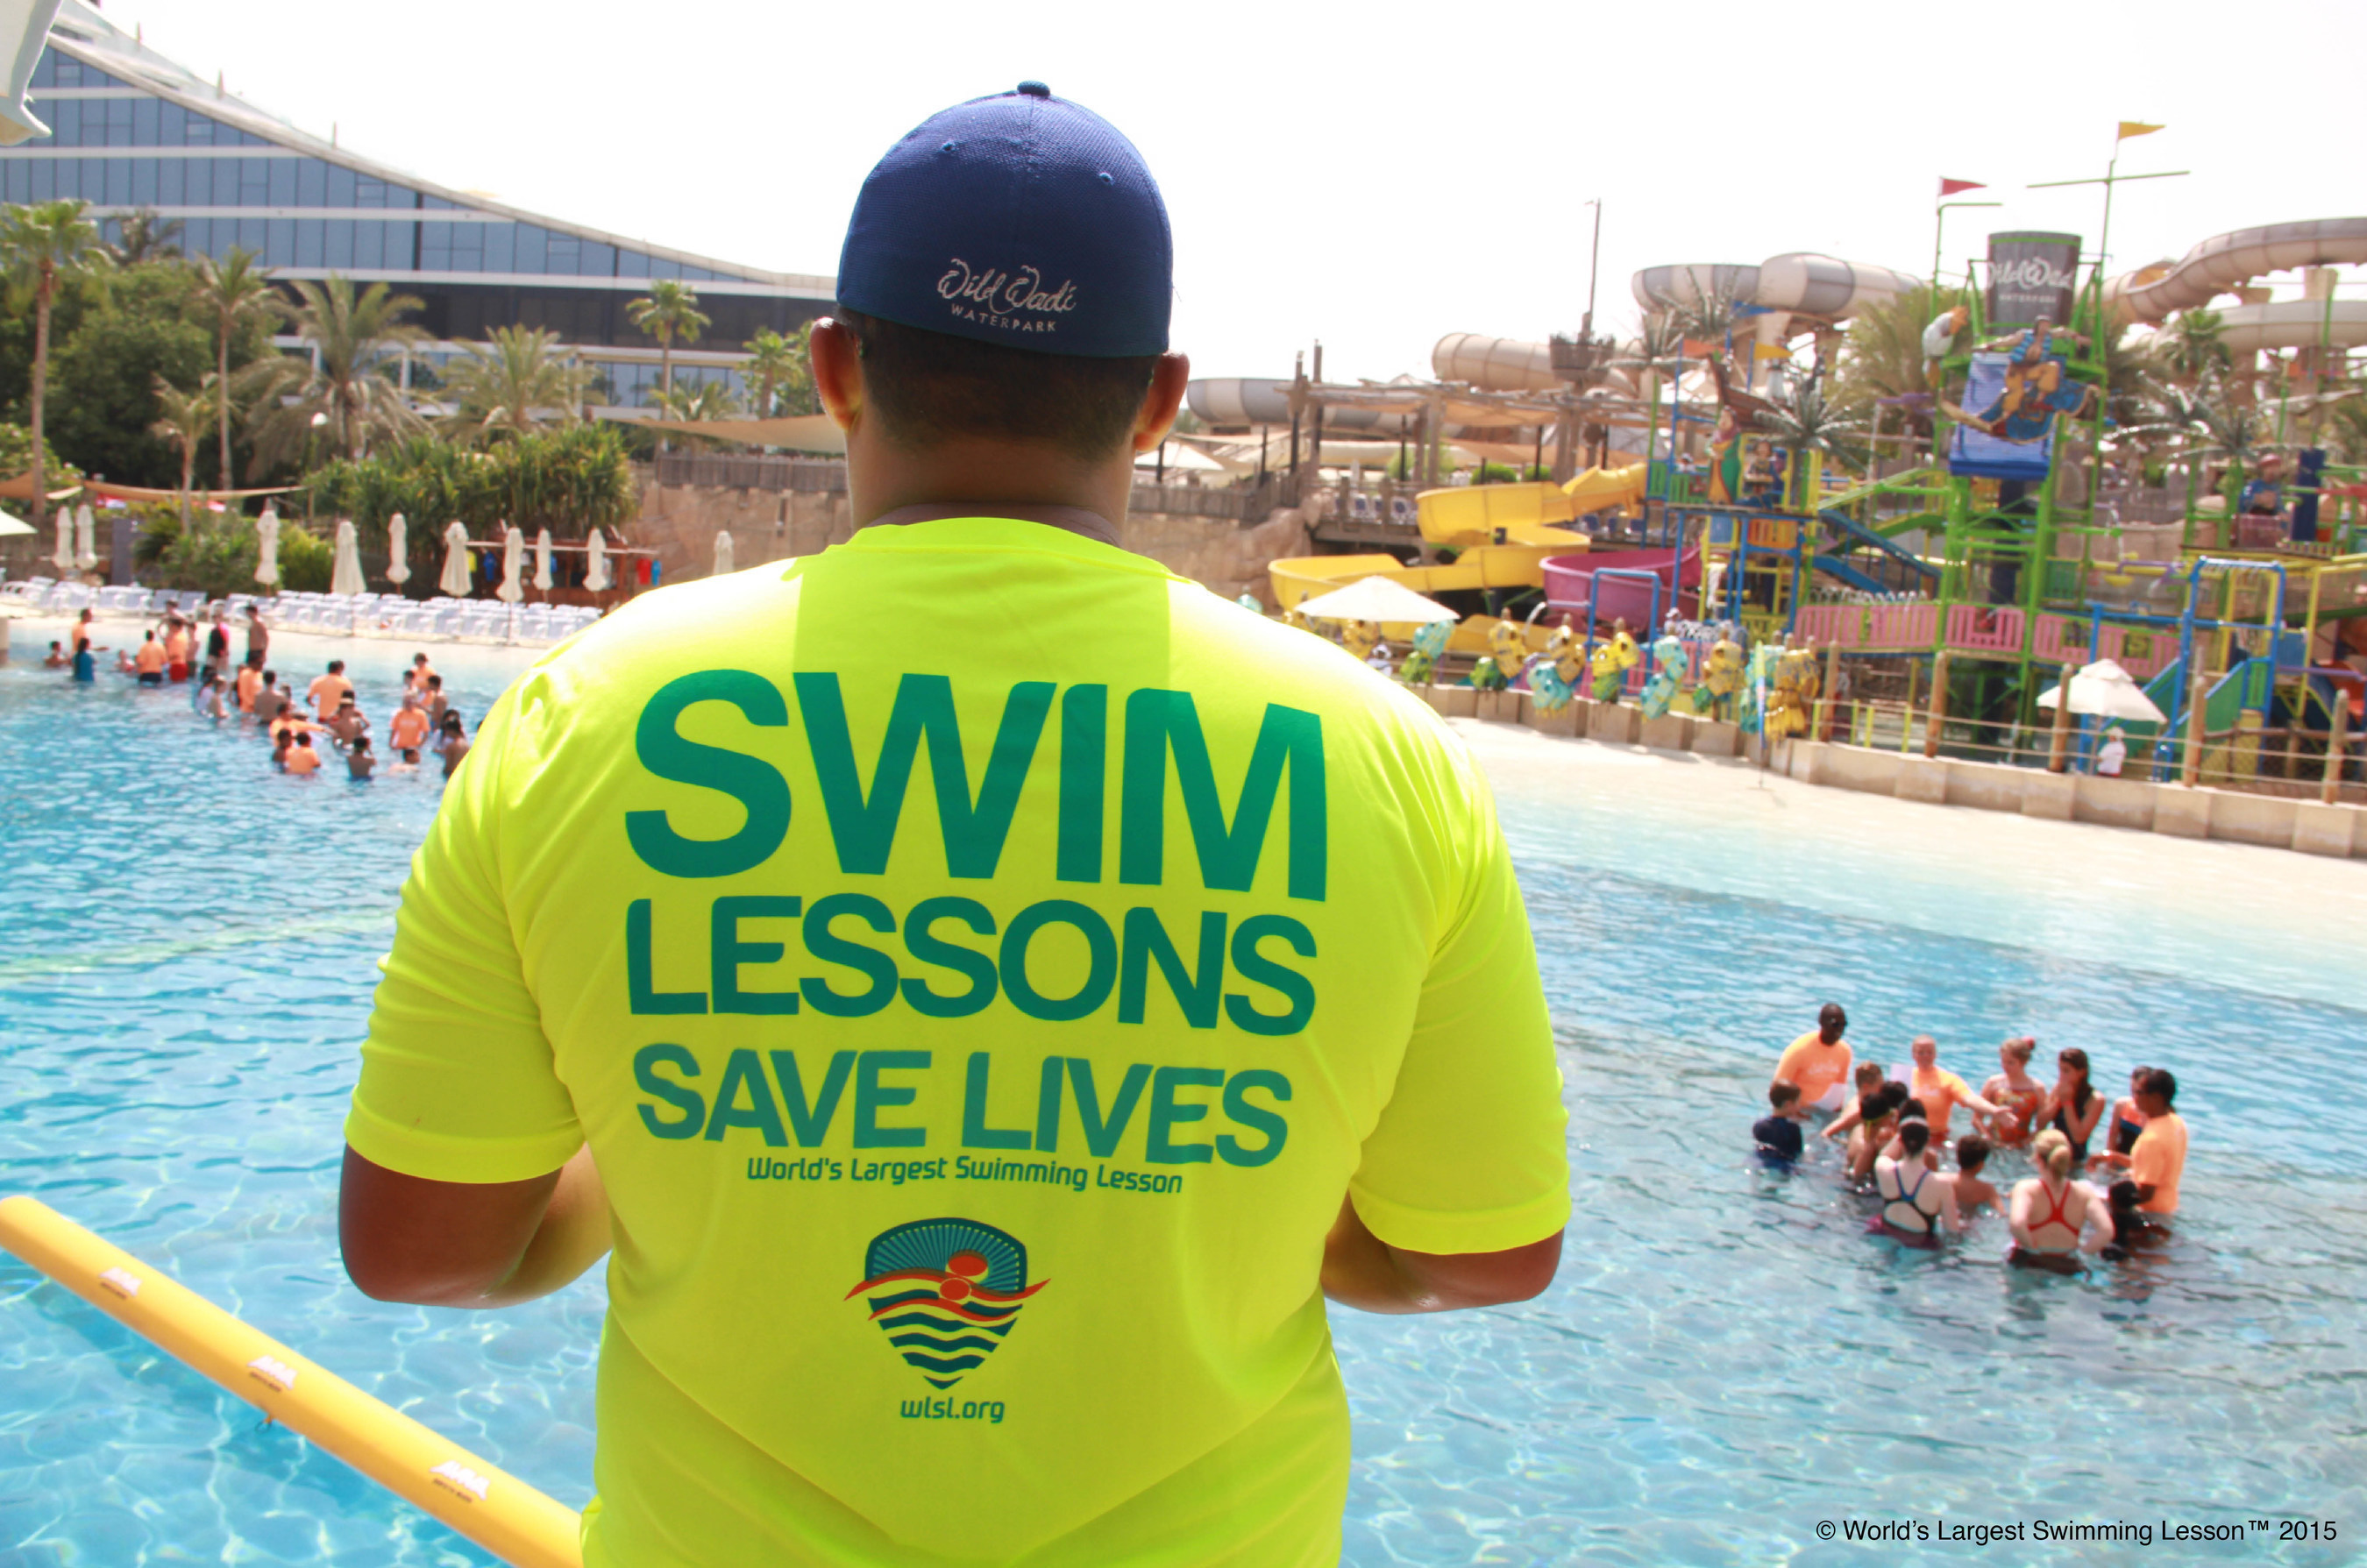 World's Largest Swimming Lesson Set for Friday, June 24th. Tens of thousands of kids join Life-saving, global event to raise awareness about the importance of teaching children to swim to prevent childhood drowning - the leading cause of accidental death for children ages 1-4. More drowning and near drowning accidents occur in June than in any other month. More than 700 aquatic facilities set to participate in 20 countries. Registration extended through June 14th. Learn more at WLSL.org